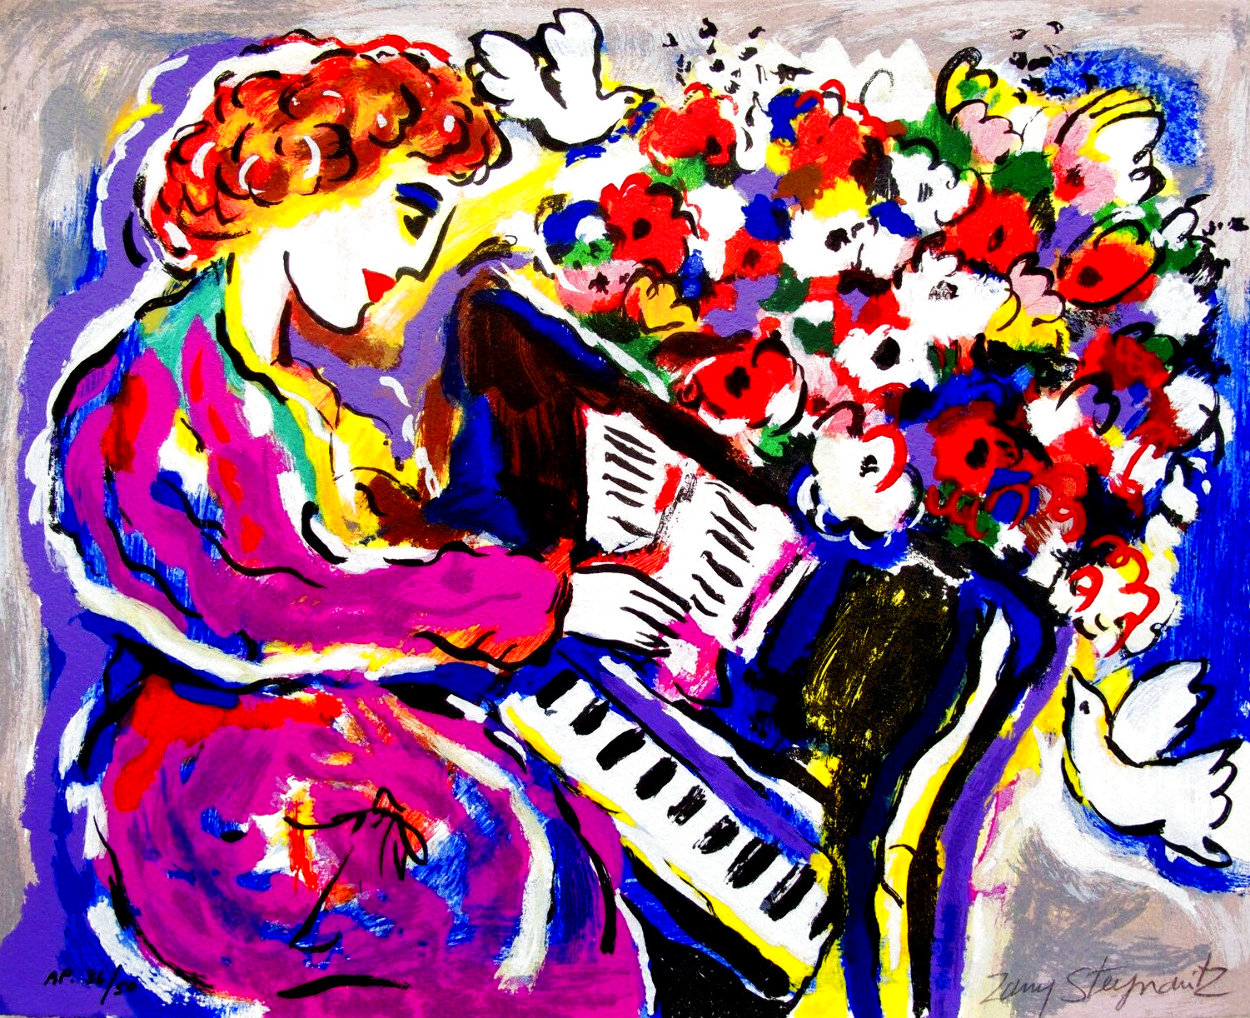 Woman Playing Piano HS Limited Edition Print by Zamy Steynovitz